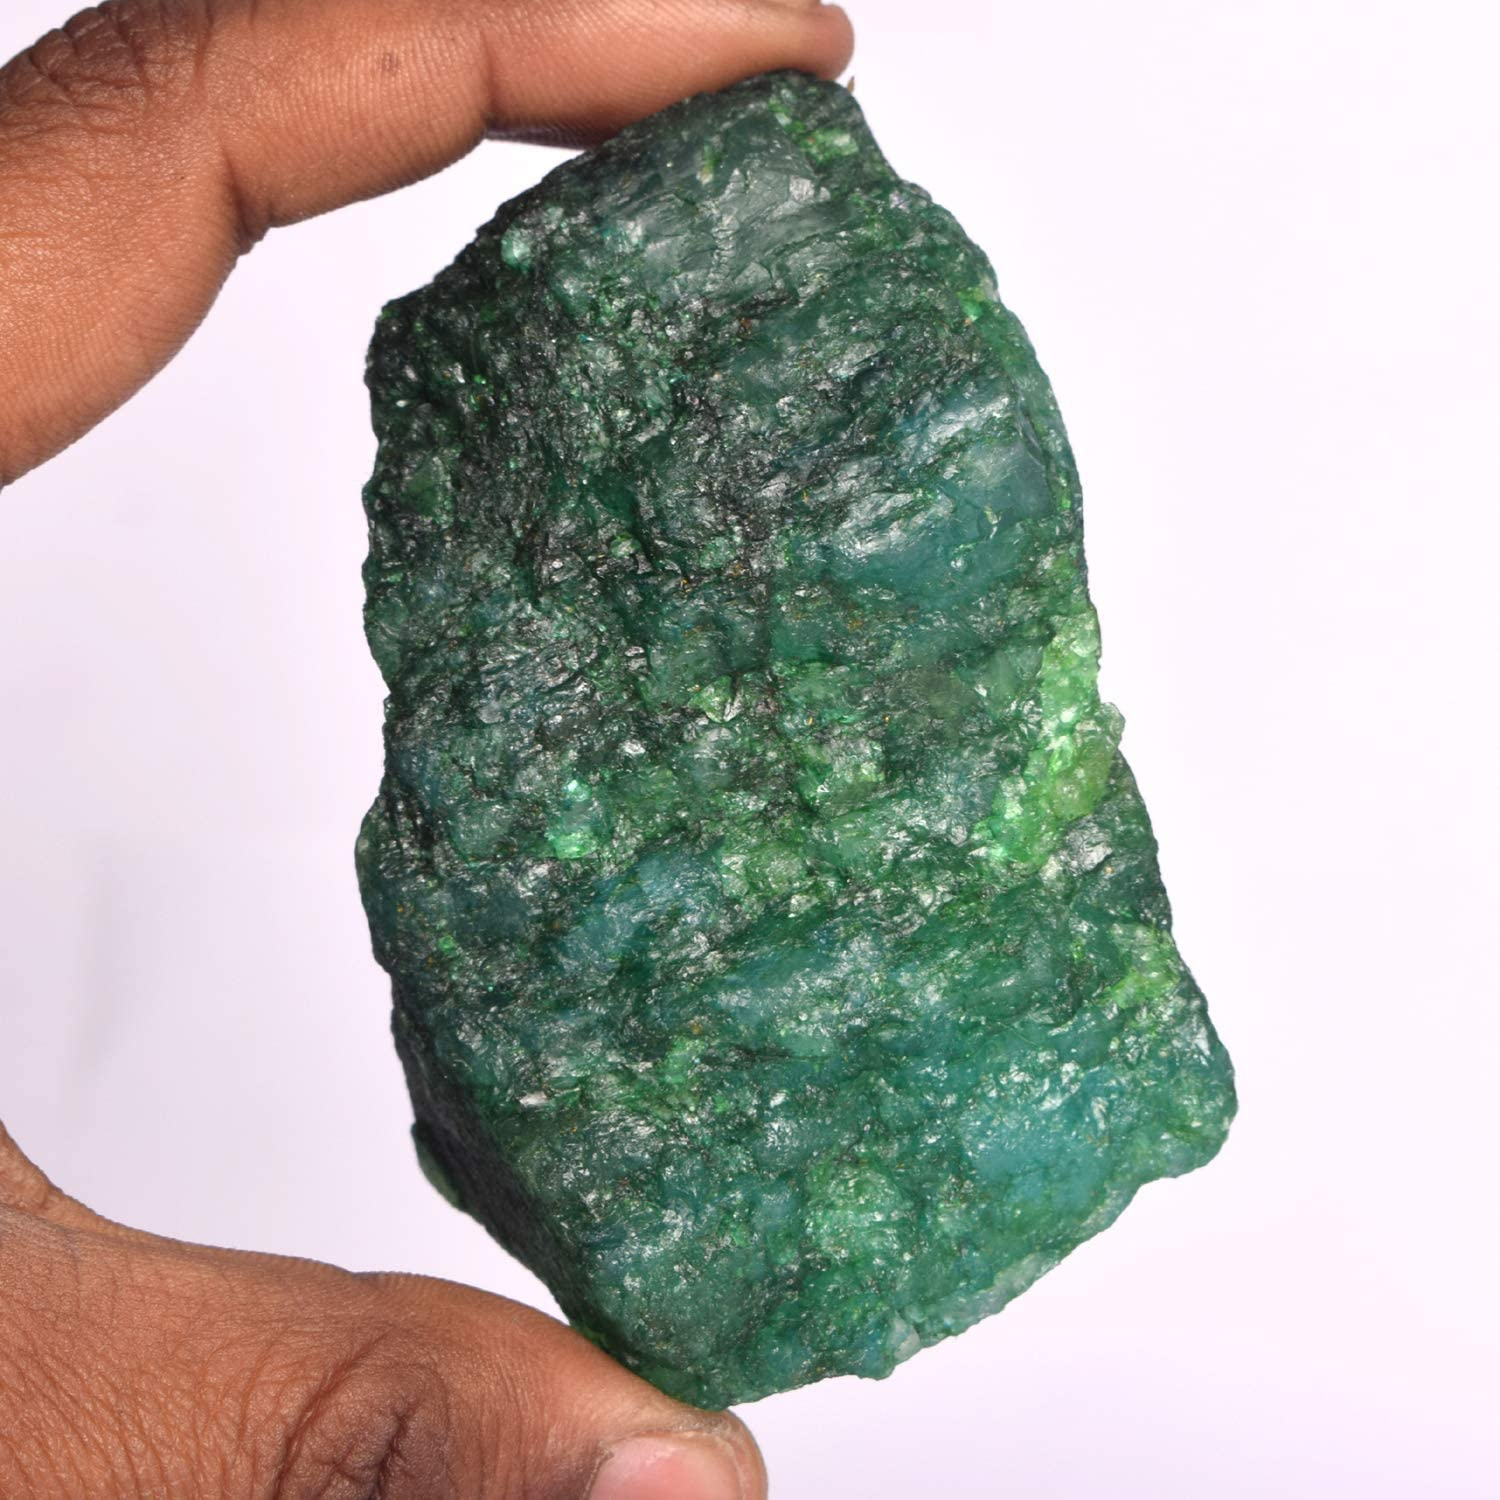 Certified Healing Energy Crystal Mineral Rock Rough Emerald Stone Gemhub Natural Green Emerald 974.00 Ct